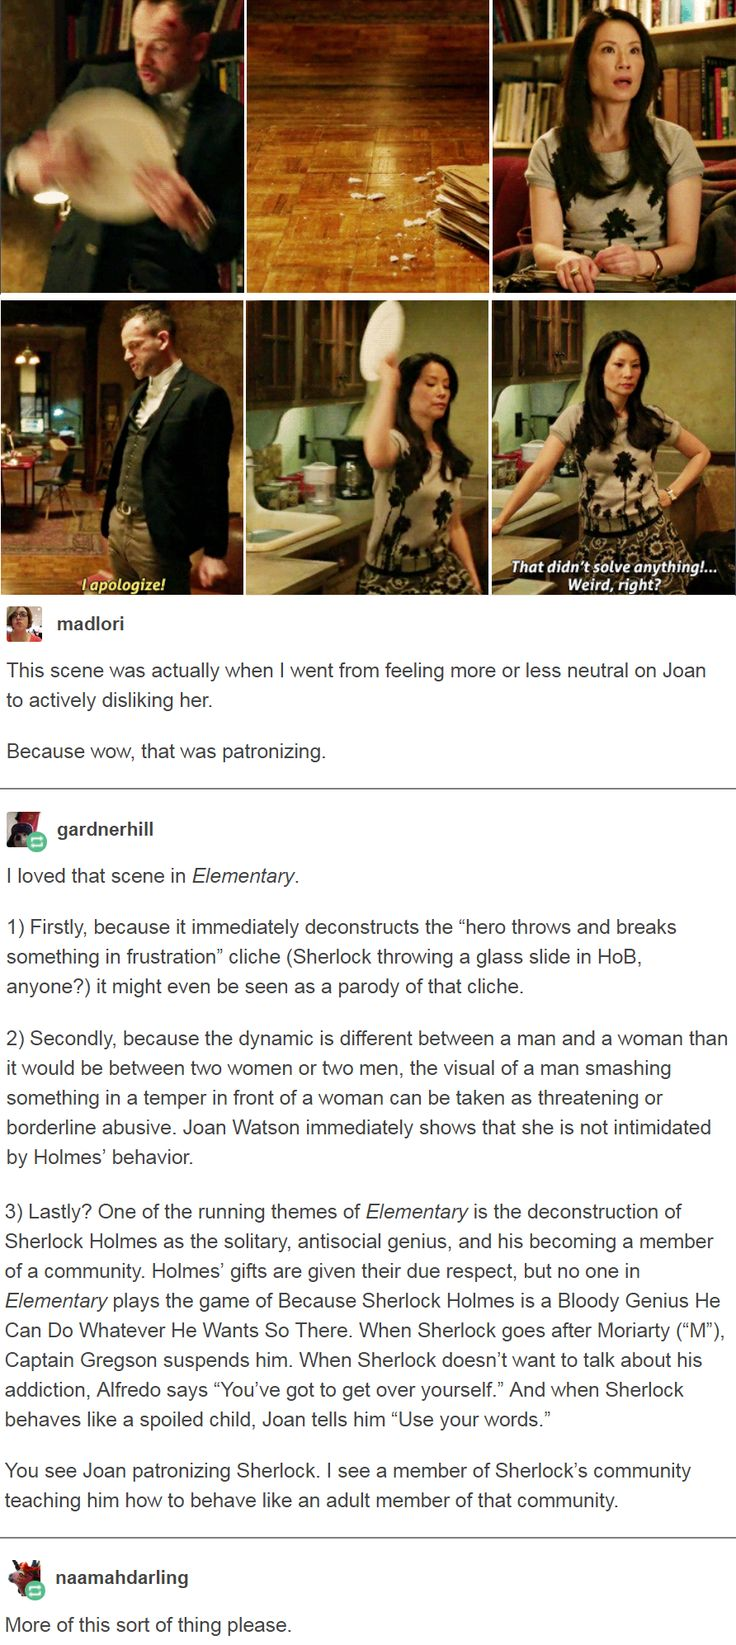 One of the running themes of Elementary is the deconstruction of Sherlock Holmes as the solitary, antisocial genius, and his becoming a member of a community.You see Joan patronizing Sherlock. I see a member of Sherlock's community teaching him how to behave like an adult member of that community. http://imaginal.tumblr.com/post/161320646624